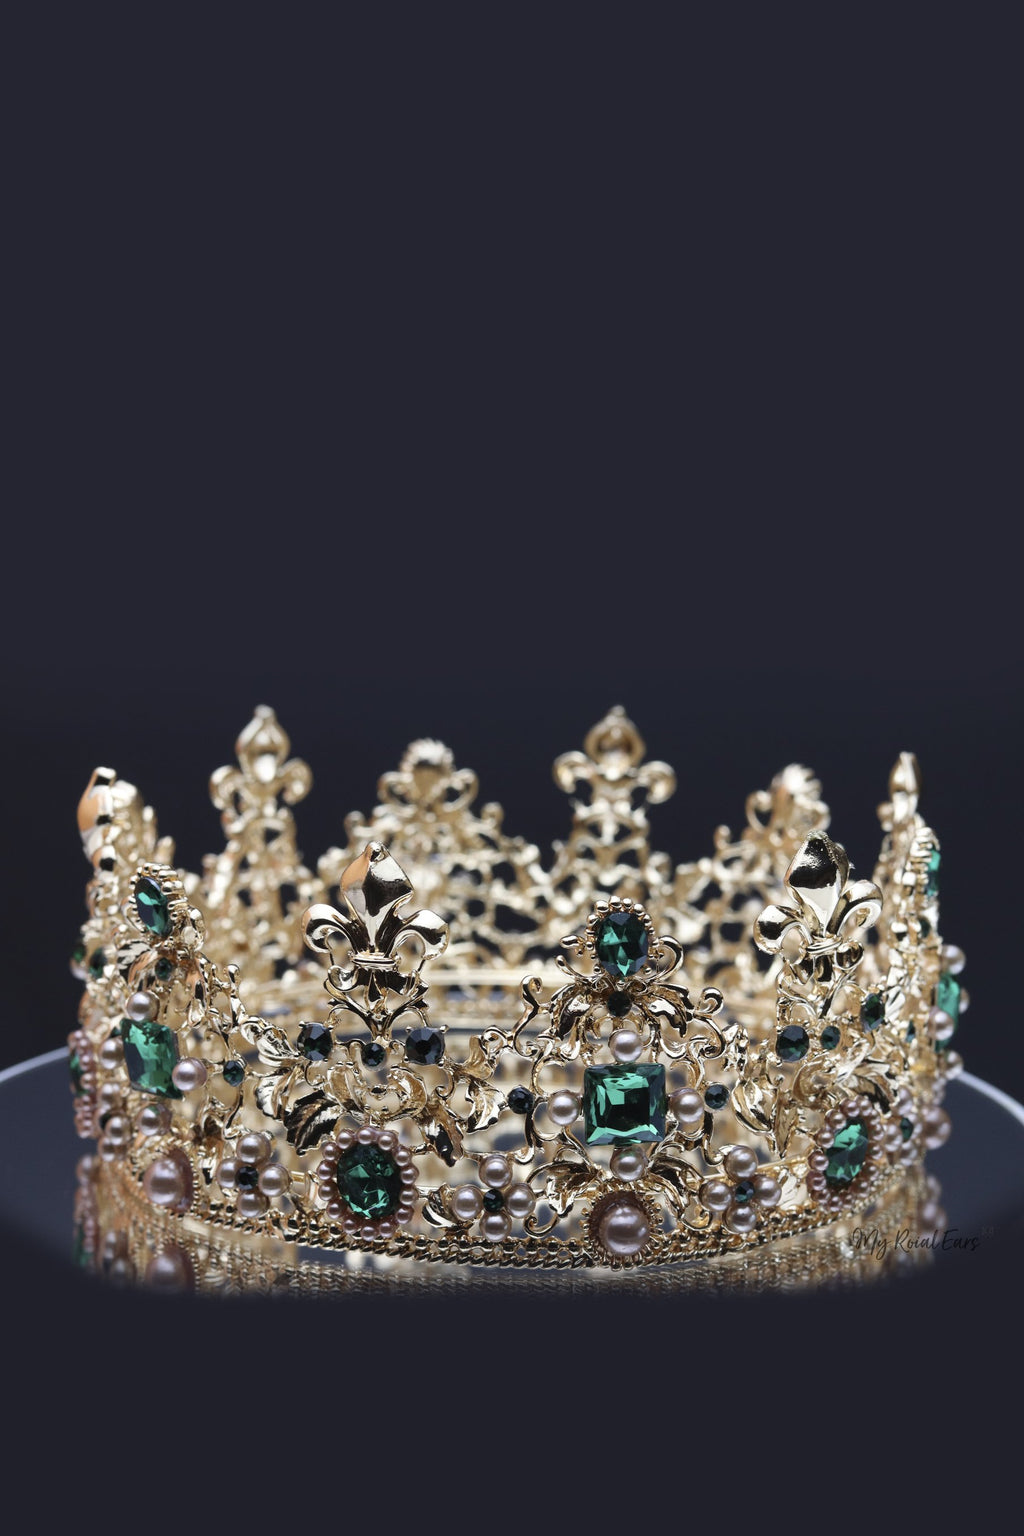 Queen Catherine- gold and green baroque crown and earring set. - My Roial Ears LTD